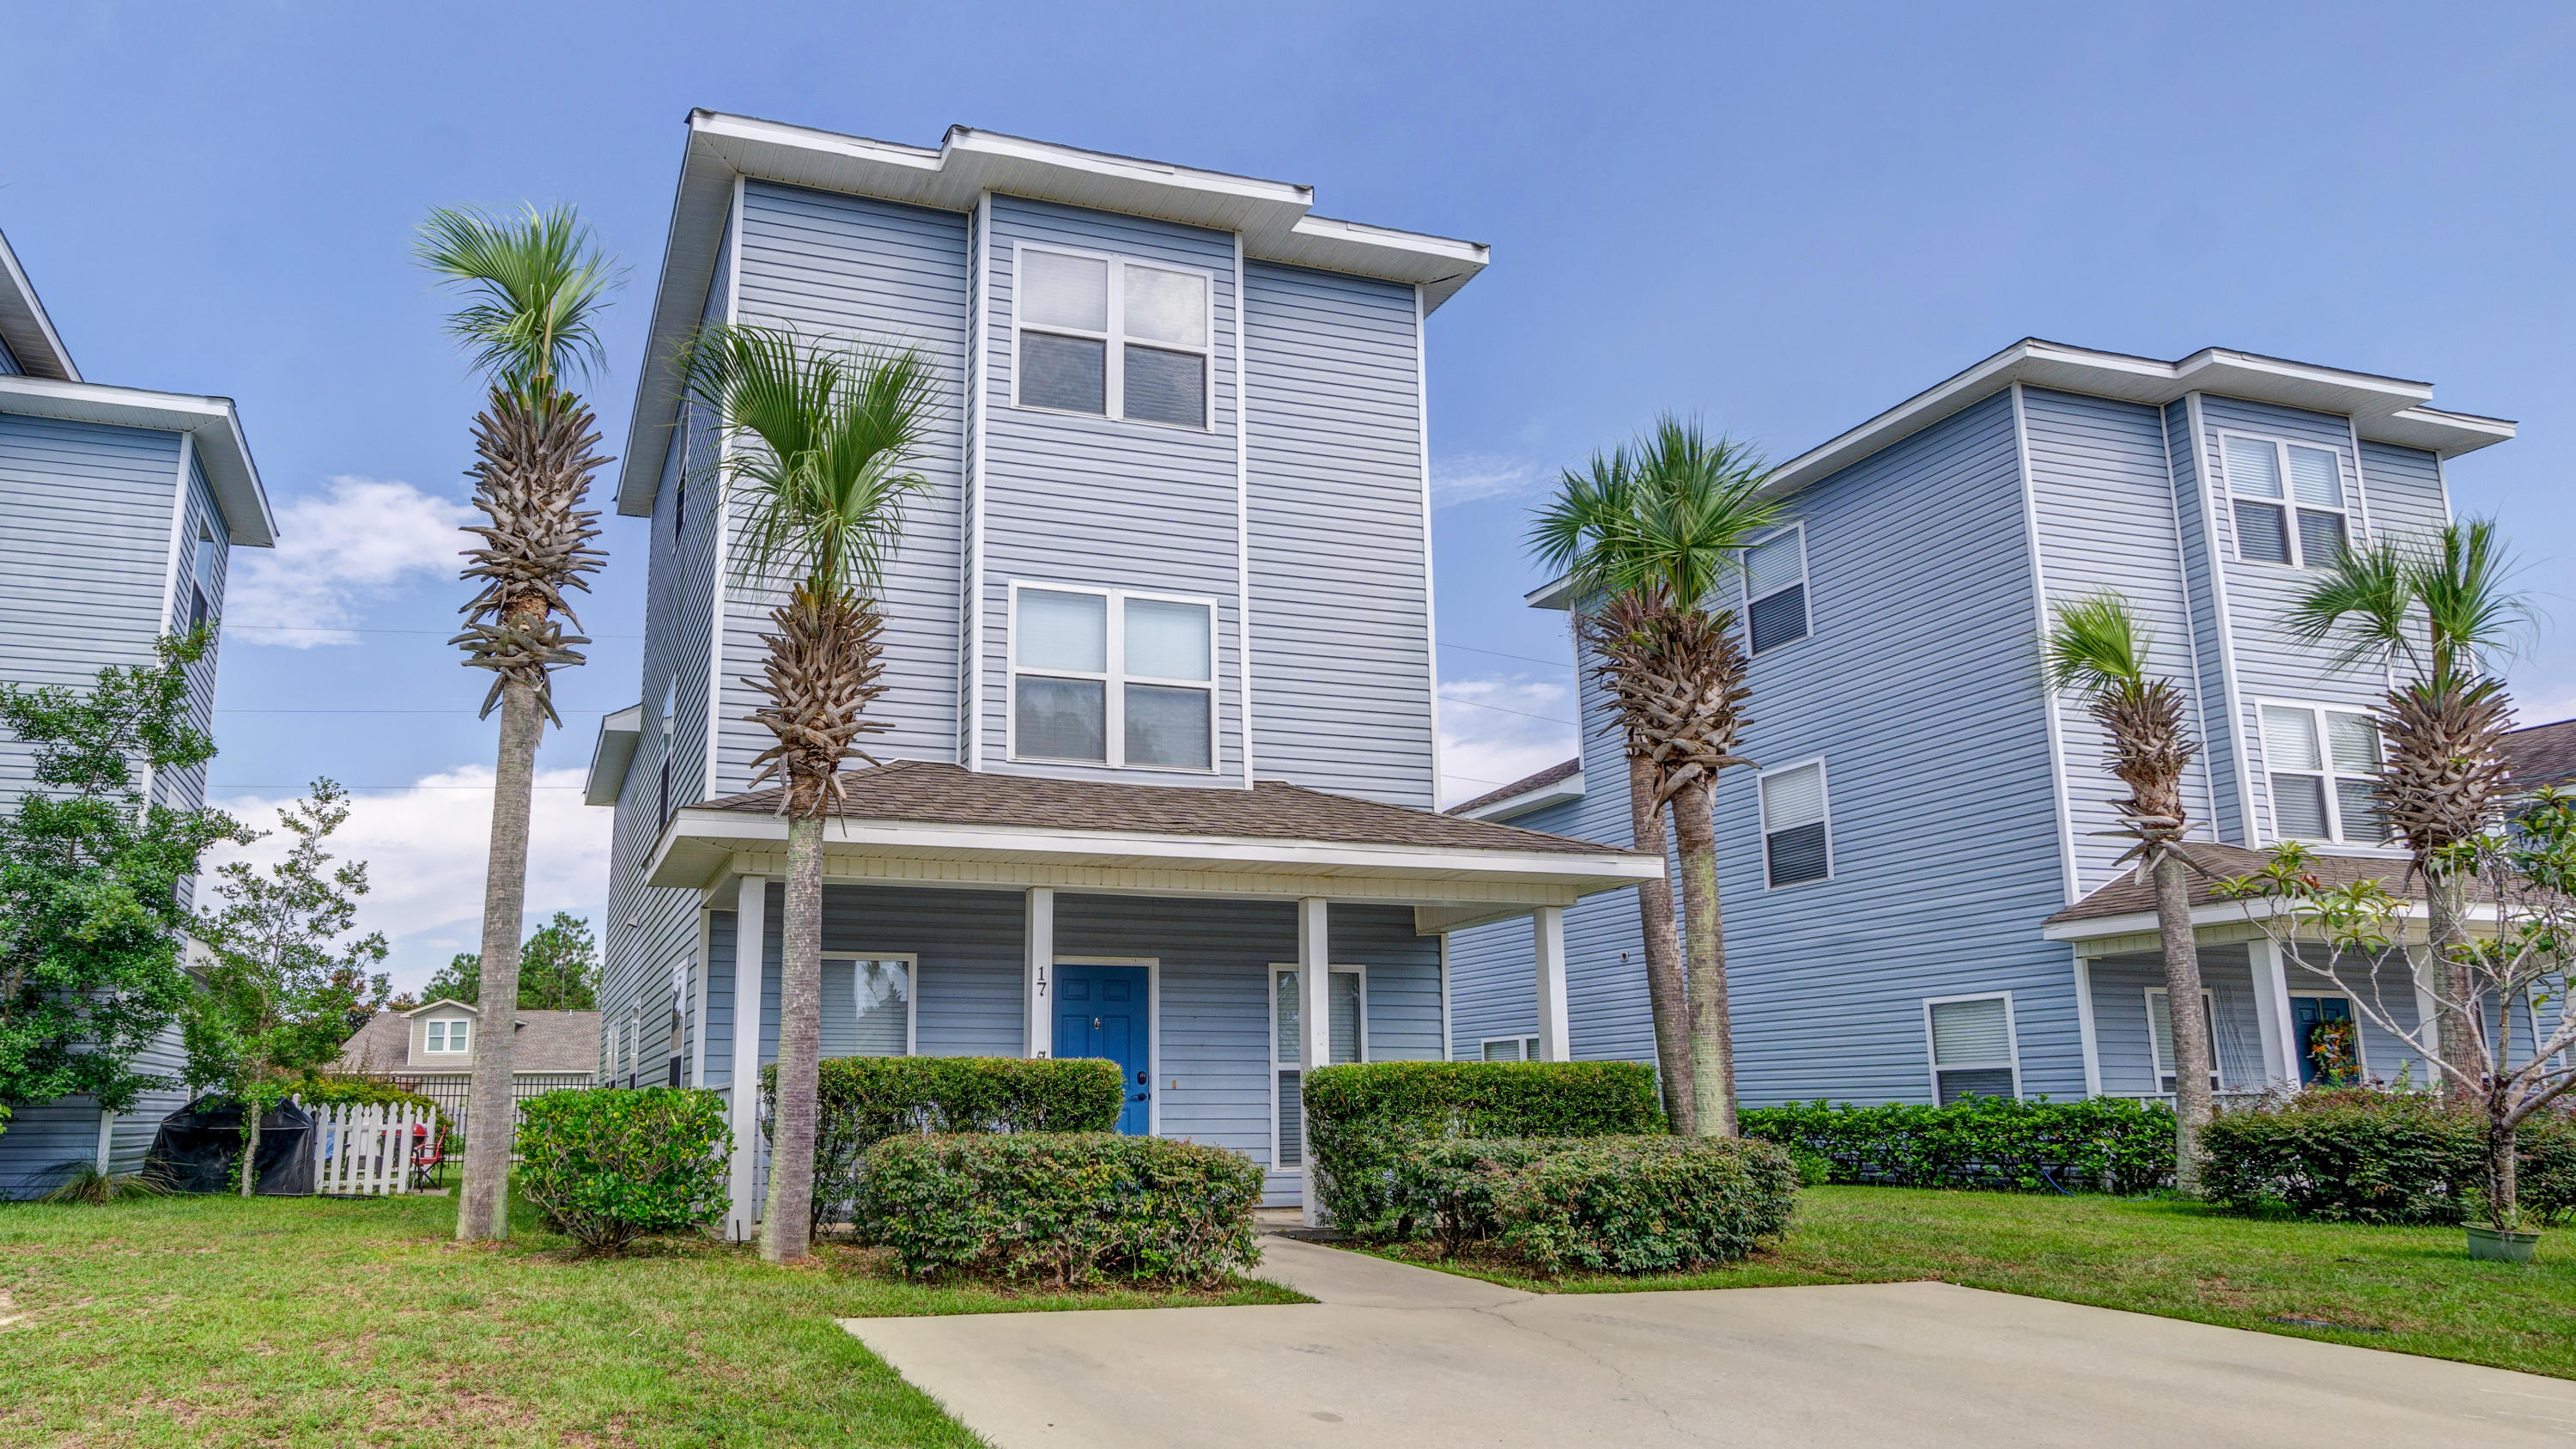 Photo of home for sale at 17 Crimson, Santa Rosa Beach FL